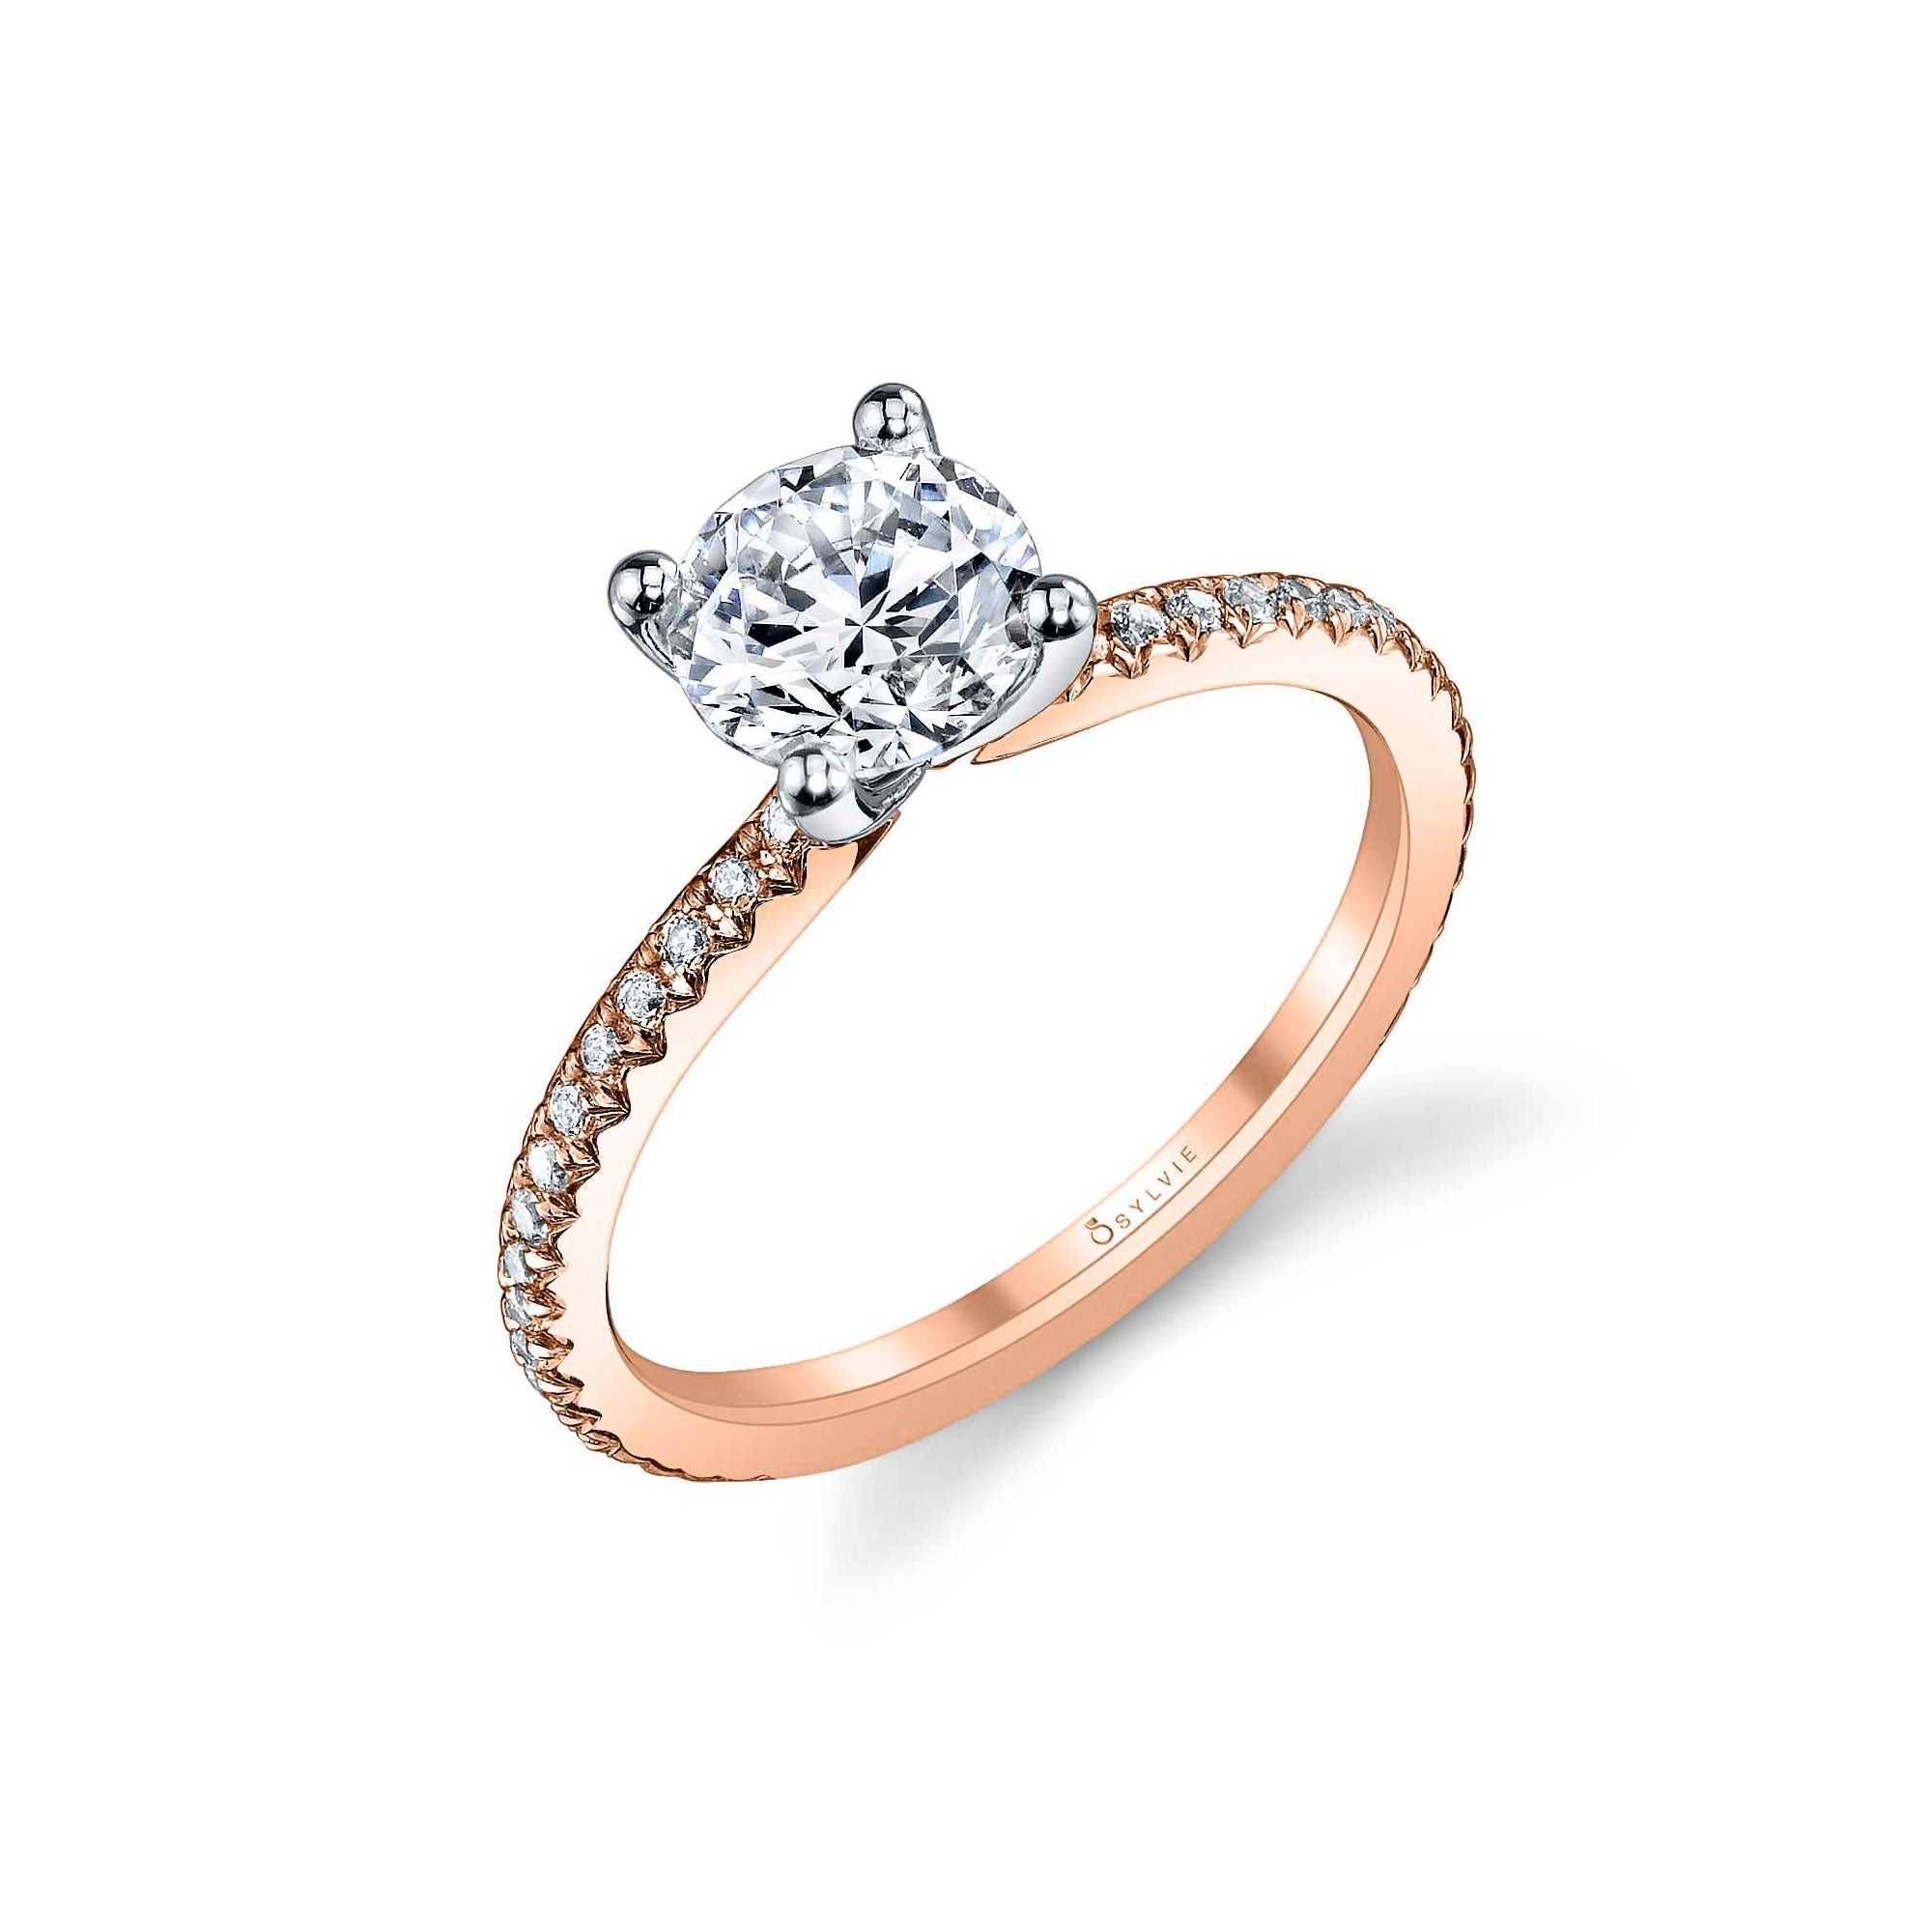 Ring Mounting by Sylvie for 1 Carat Center, 14K Rose Gold